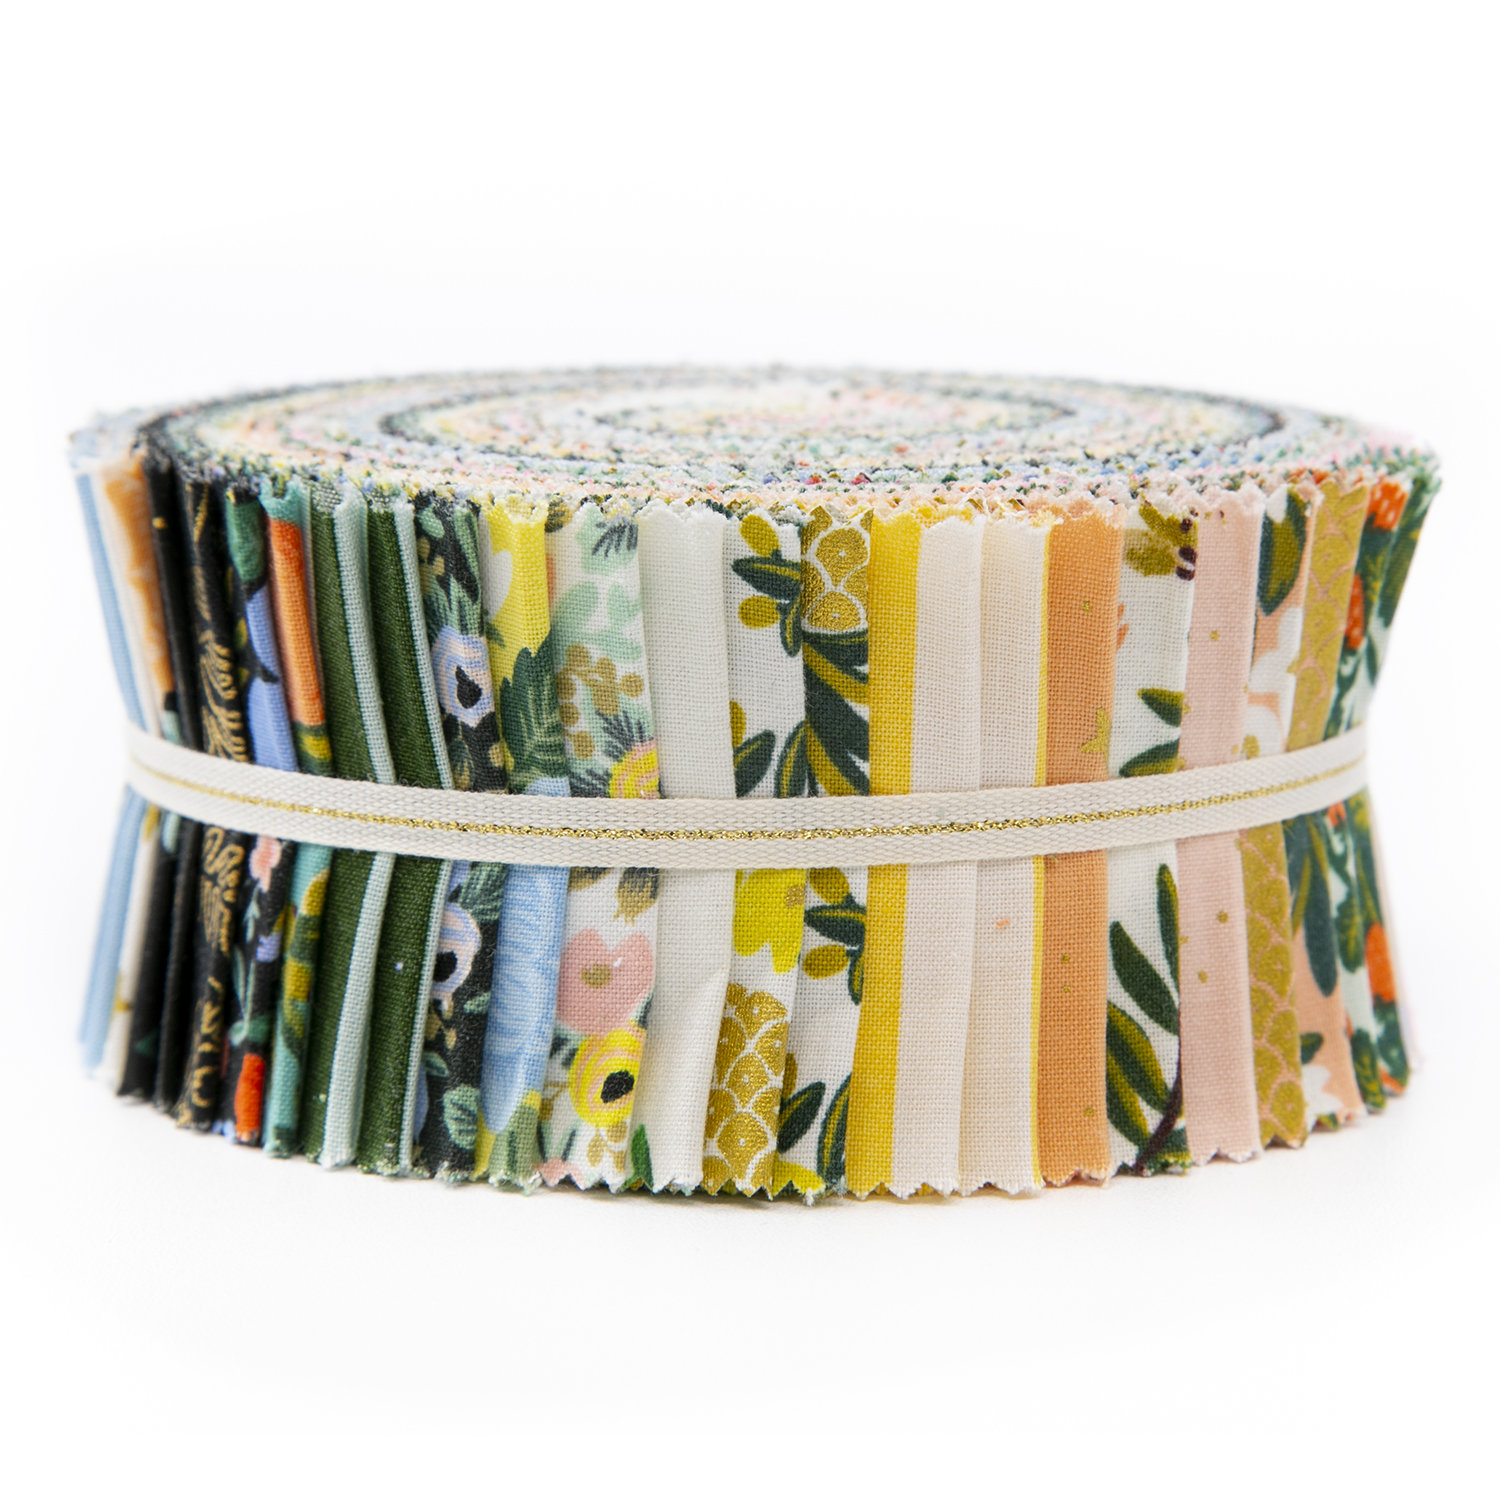 Primavera Jelly Roll by Rifle Paper Co. for Cotton + Steel